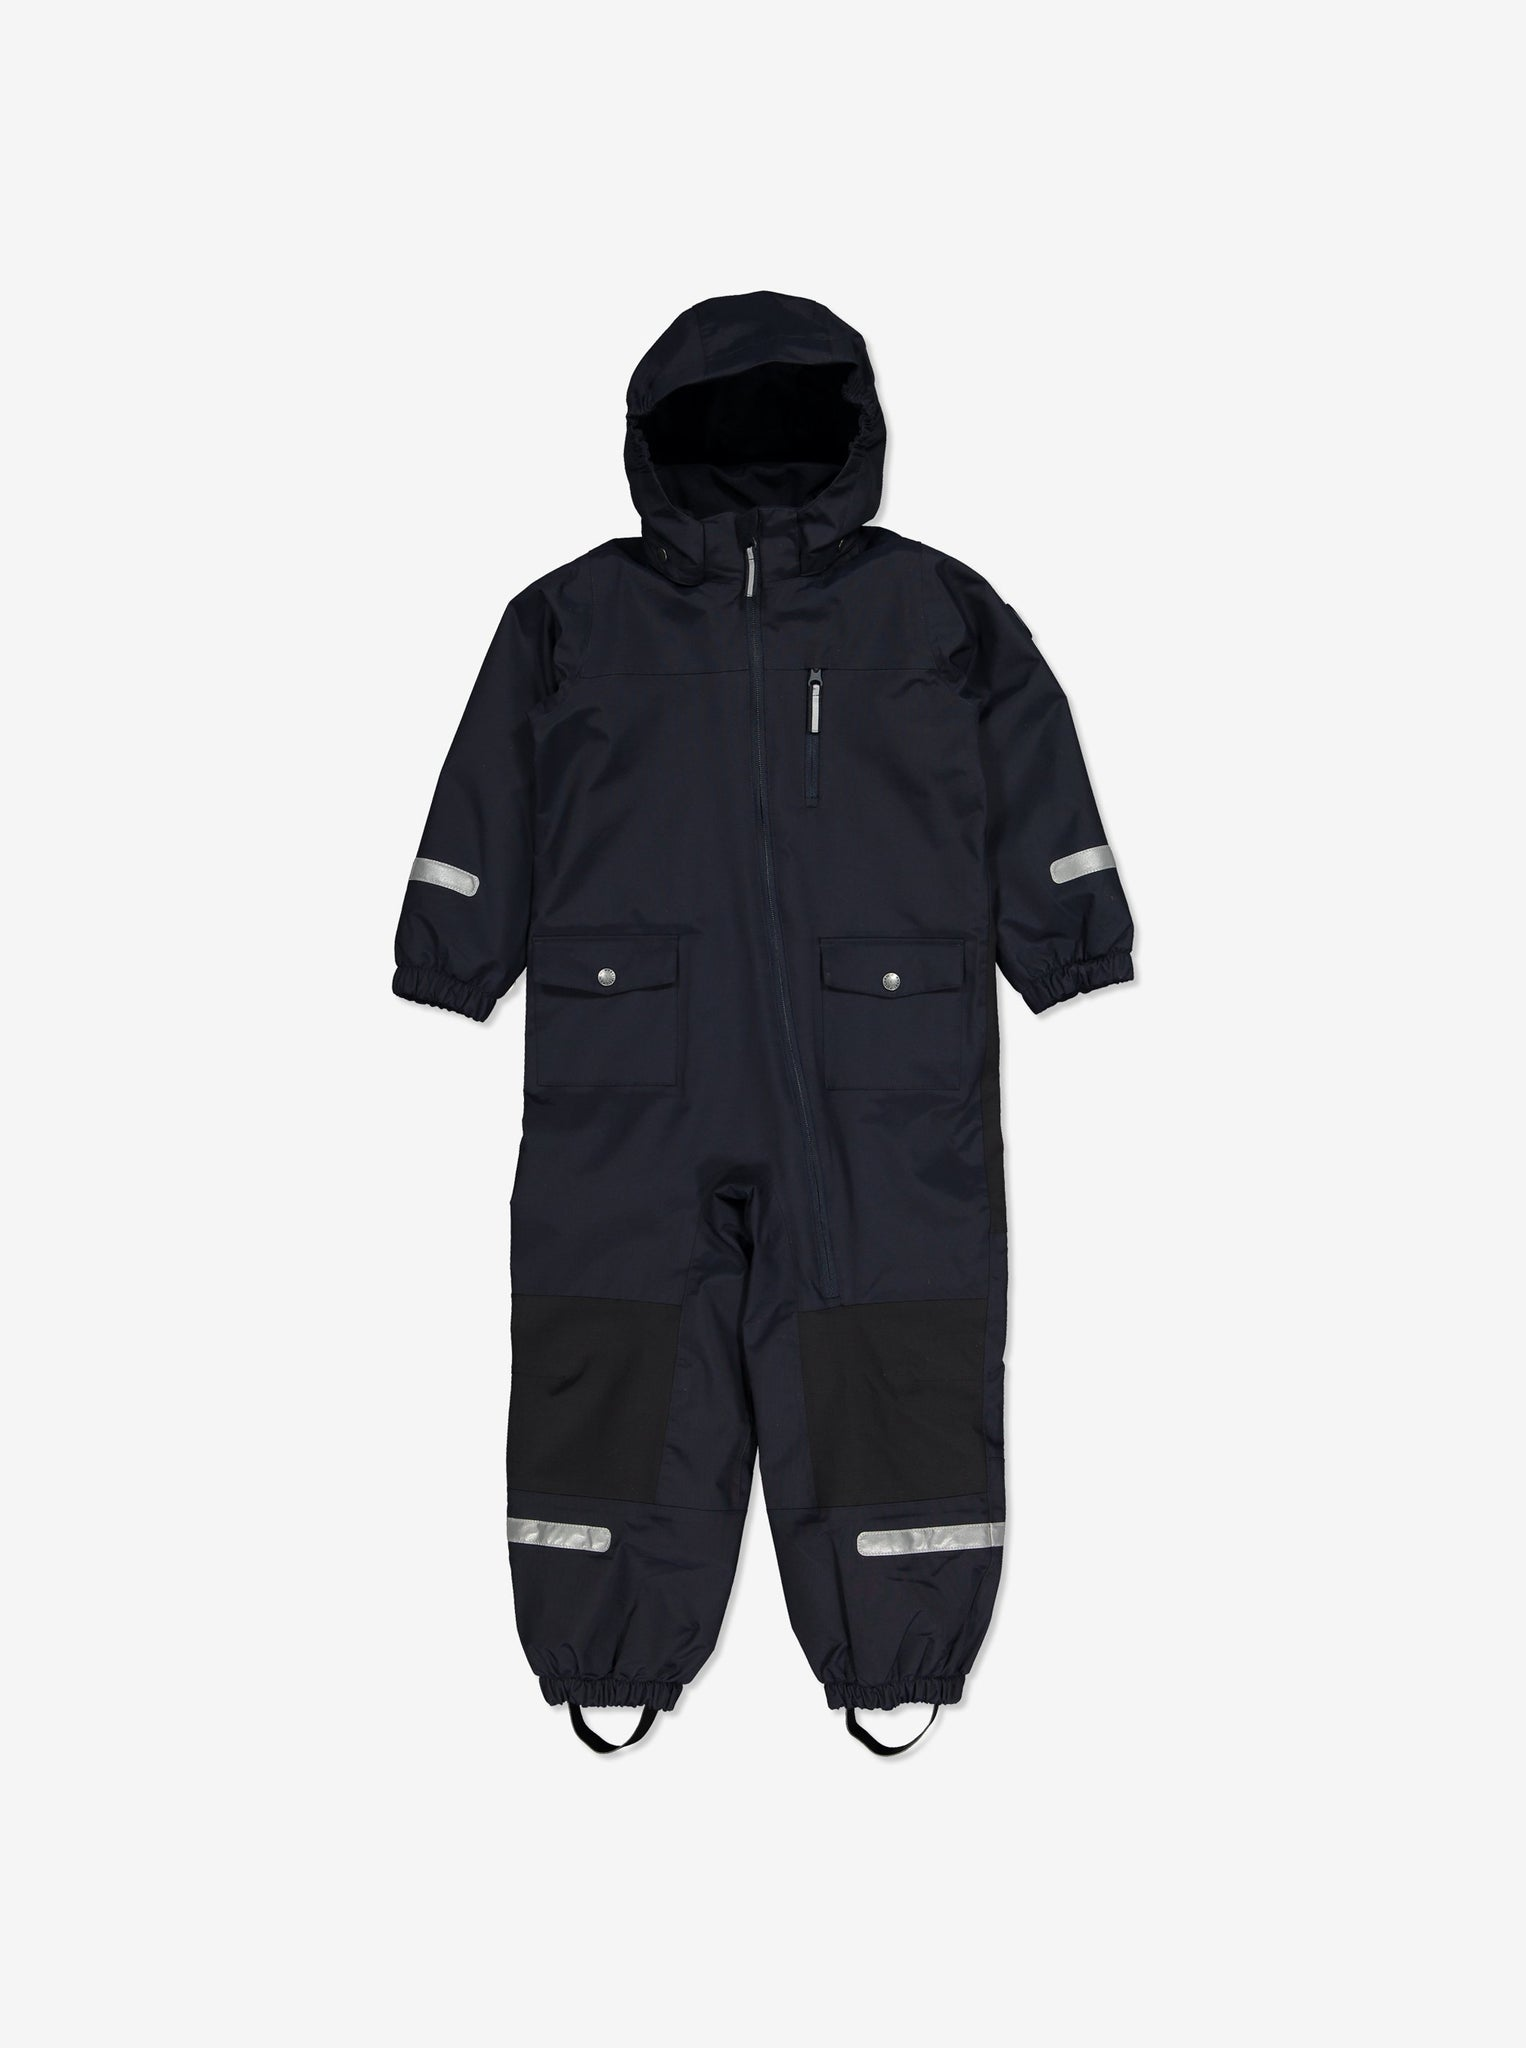 Waterproof Shell Fleece Lined Kids Overall-2-6y-Navy-Boy